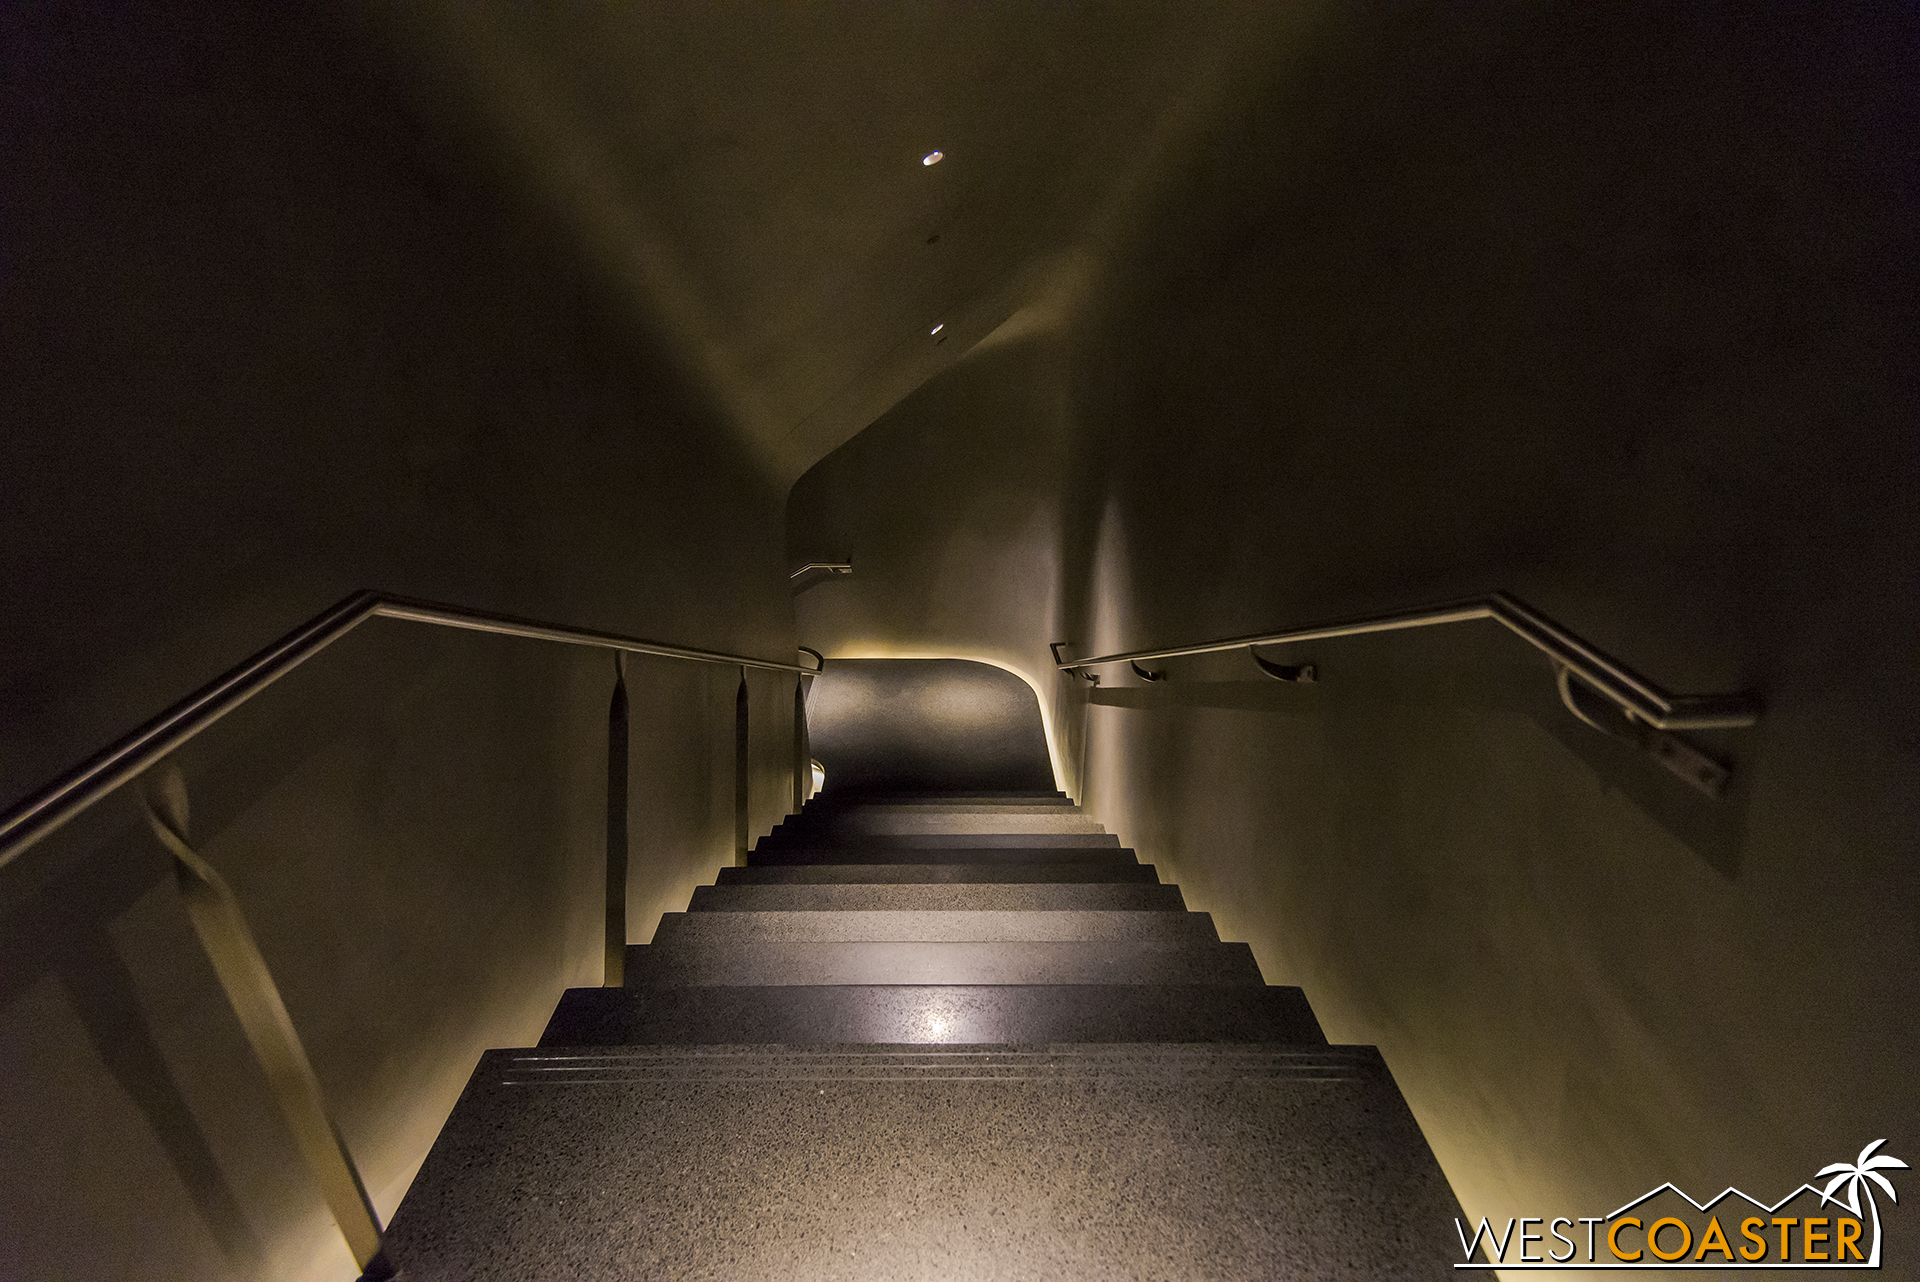 Descending the stairs, which provides a darker experience.